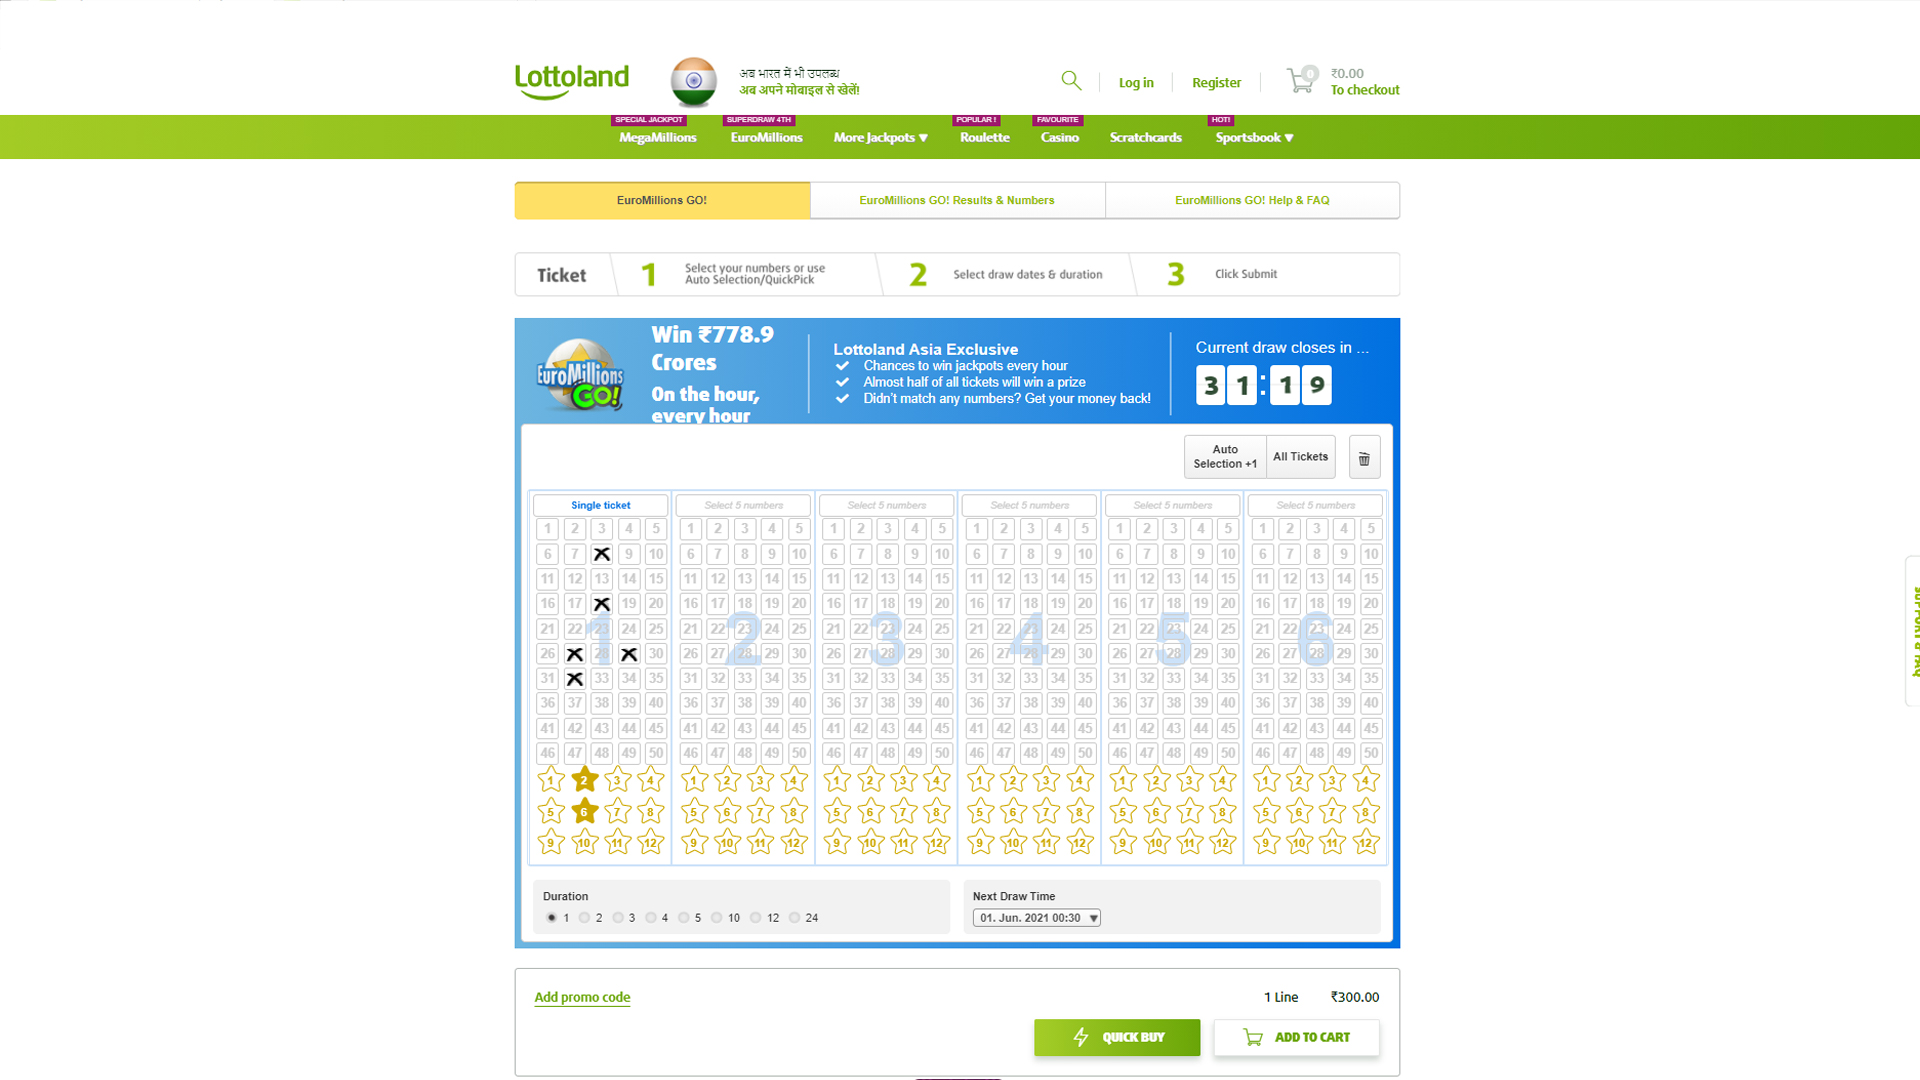 In this Euromillions version, you can try your chances each hour.